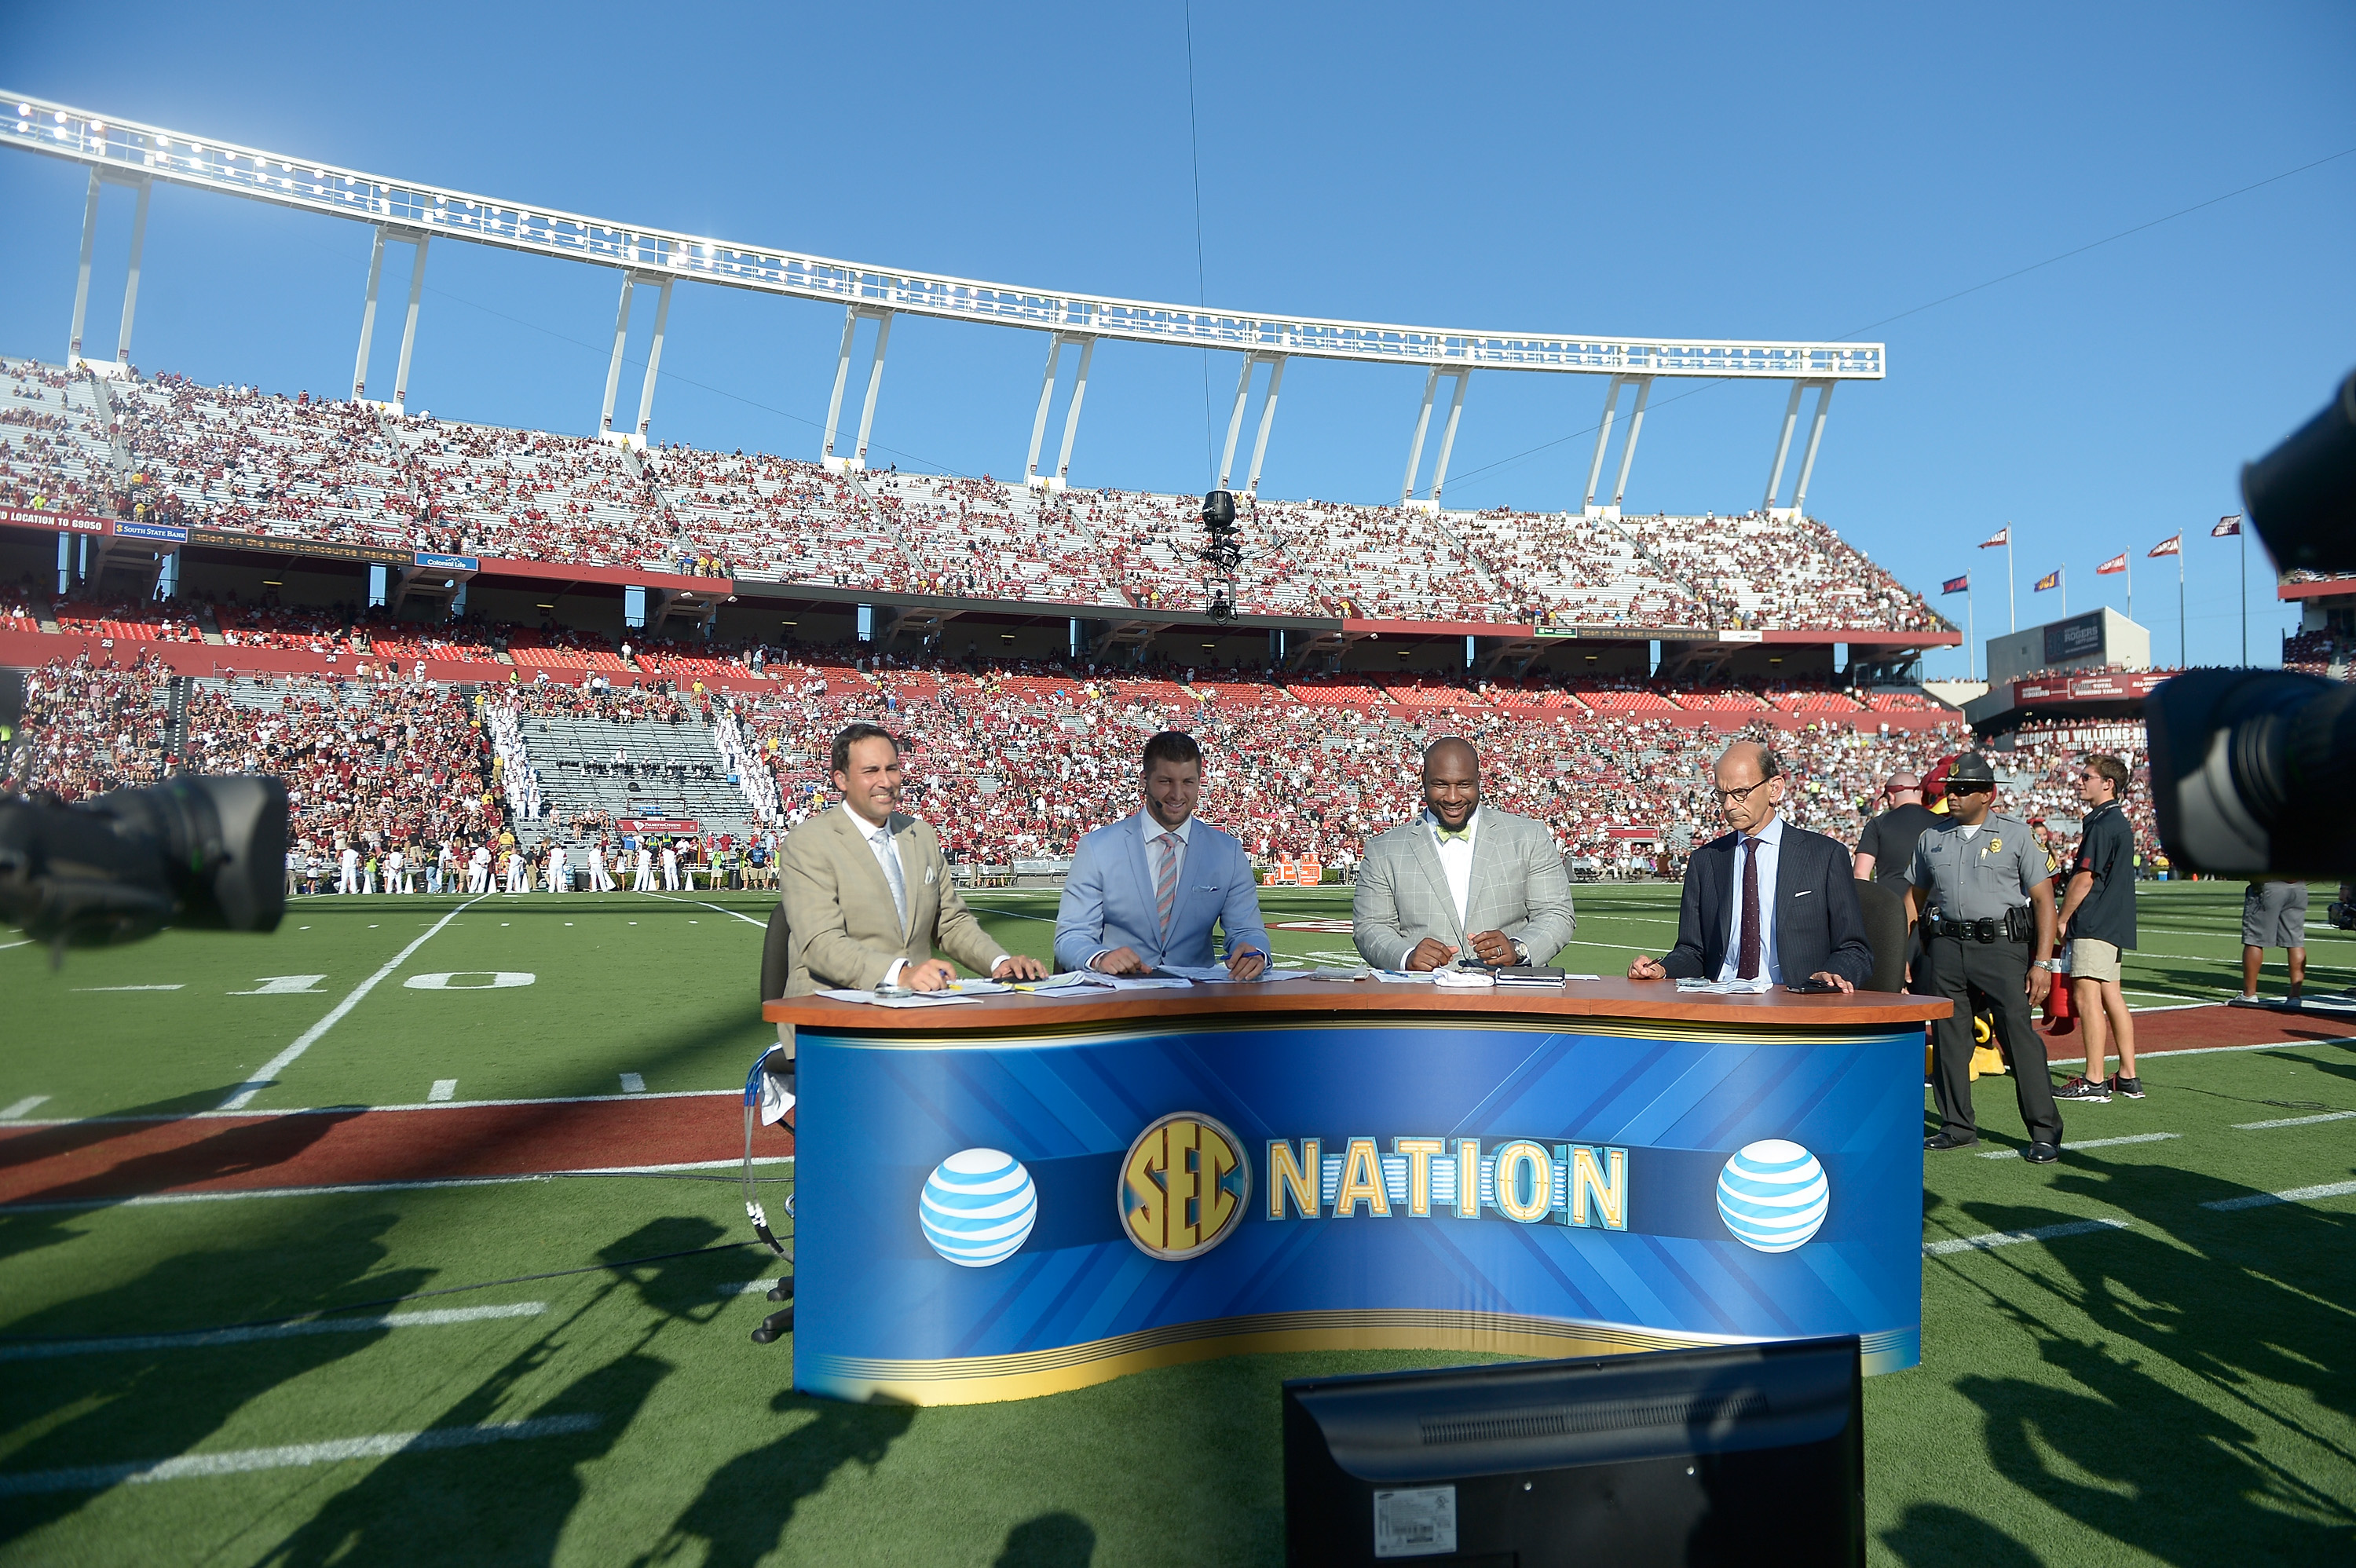 The SEC Network readies for their close-up.